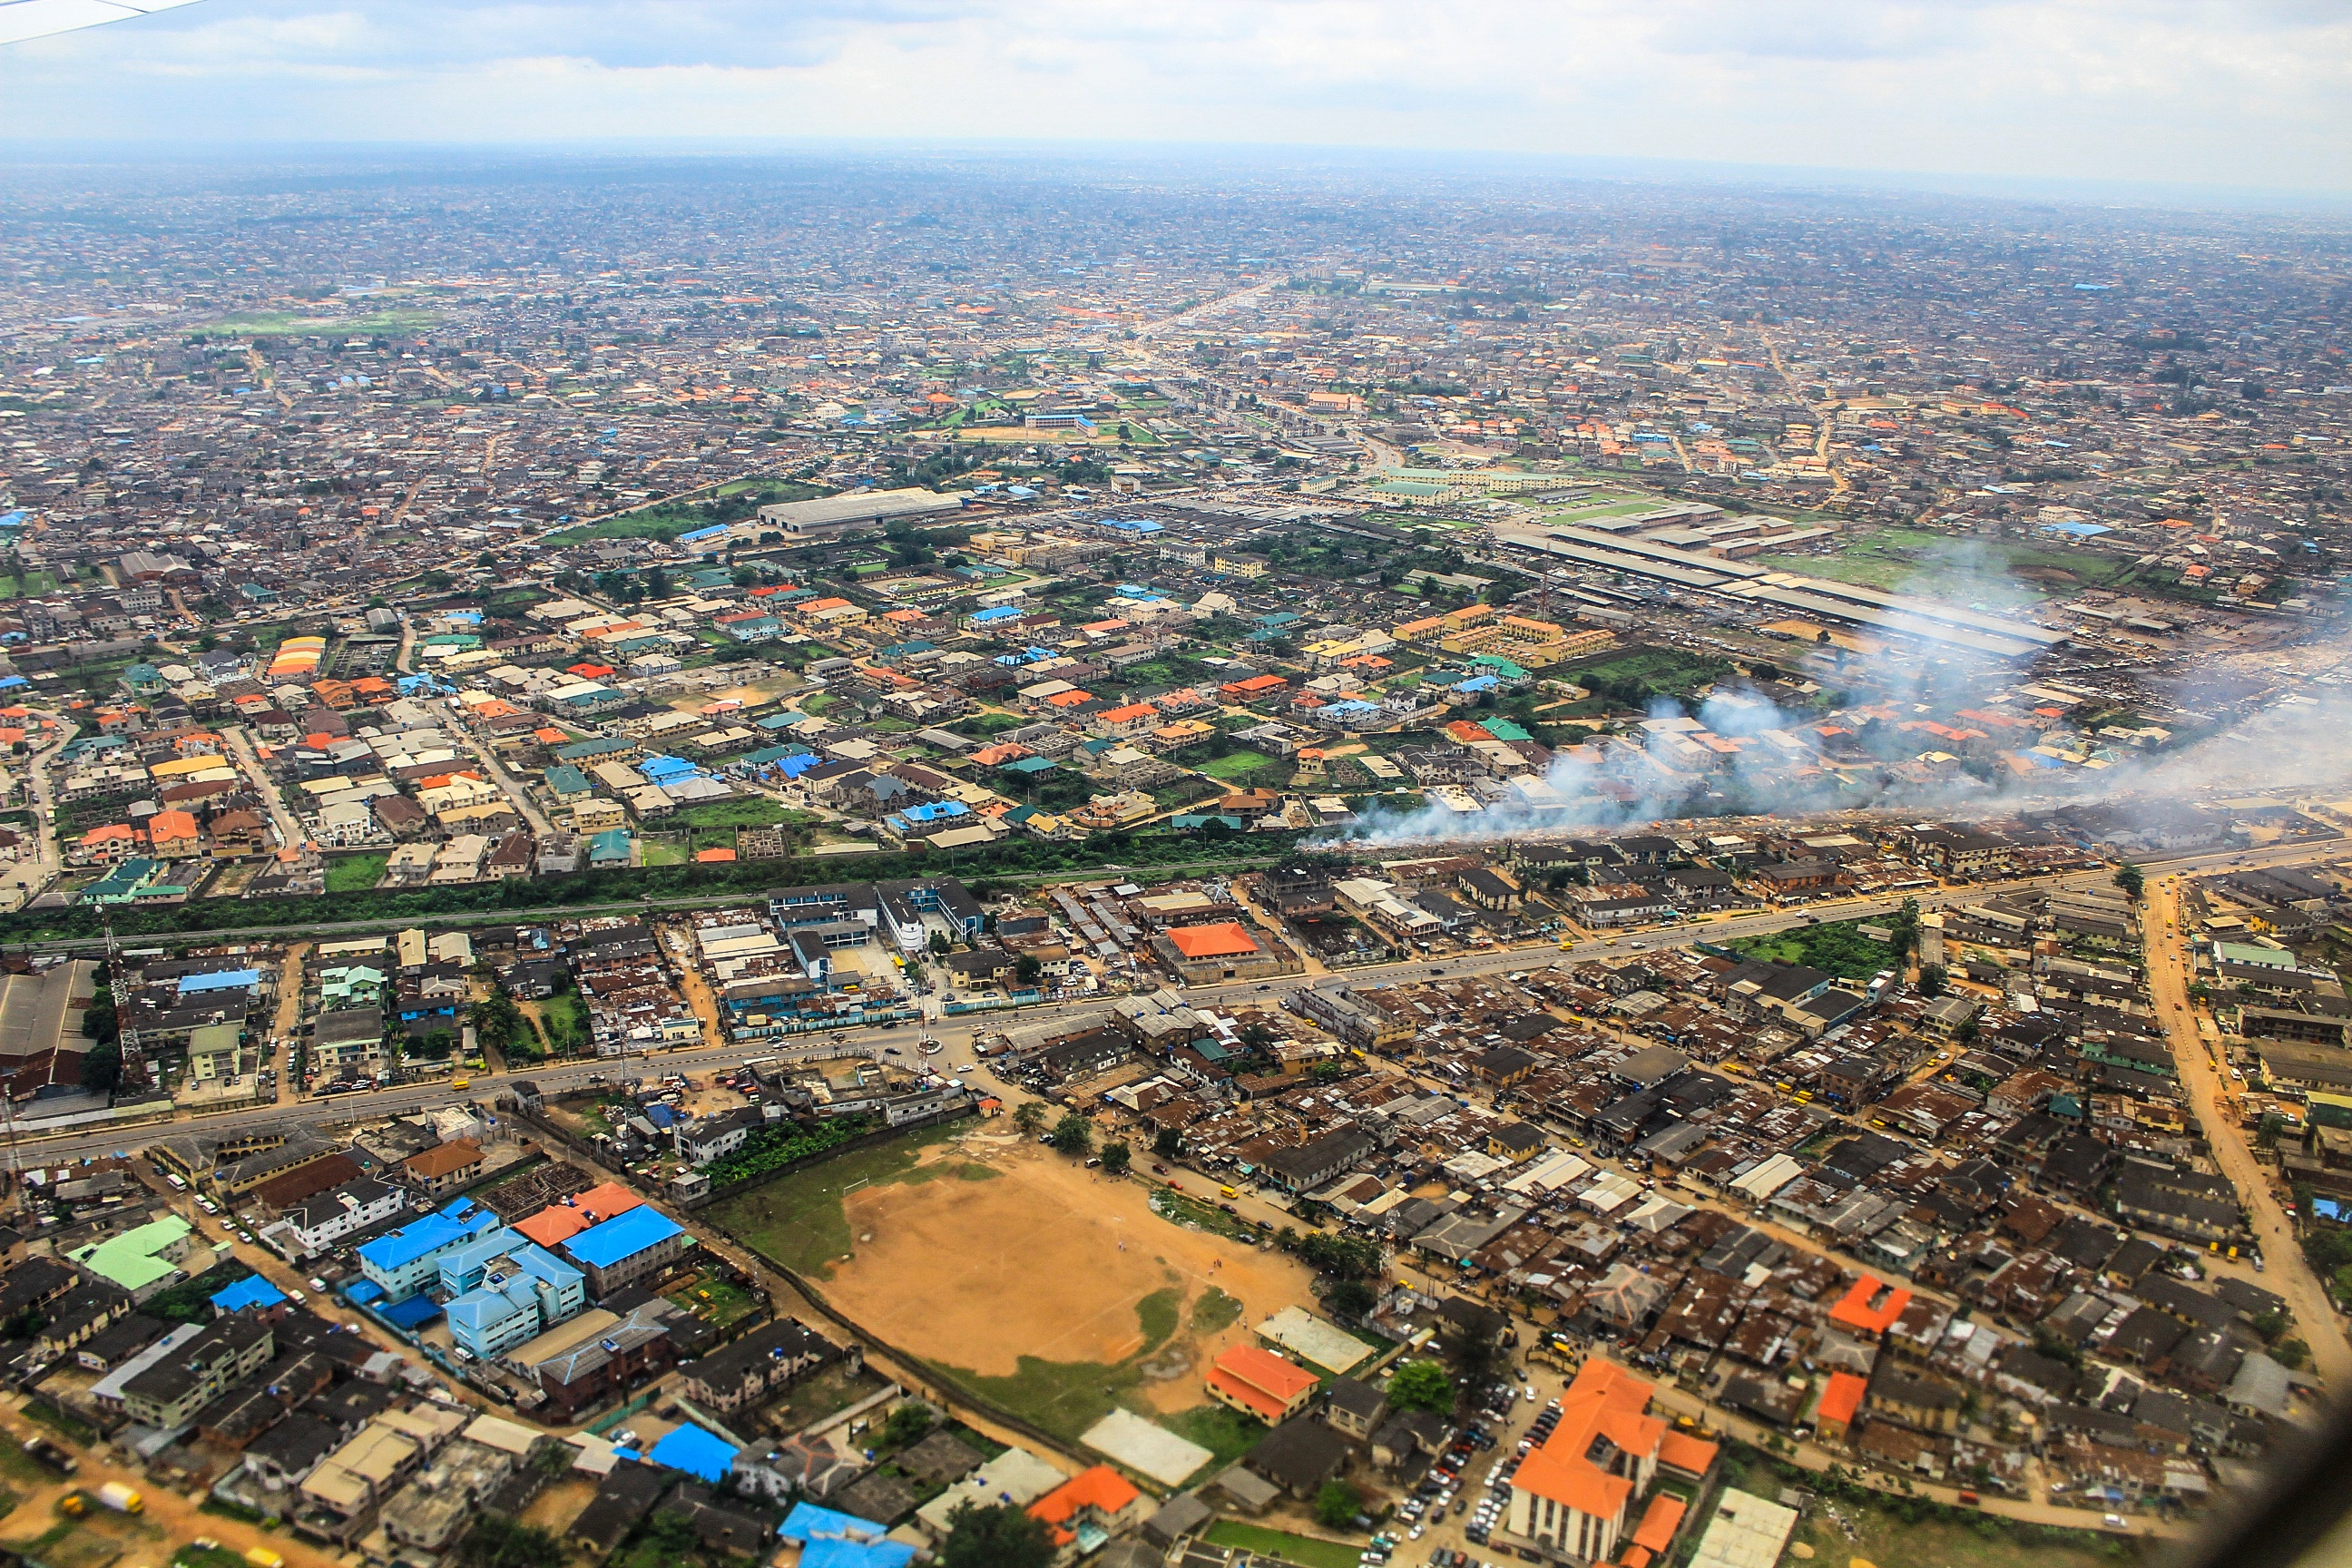 Aerial-View-of-Lagos,-Nigeria-470430306_2592x1728